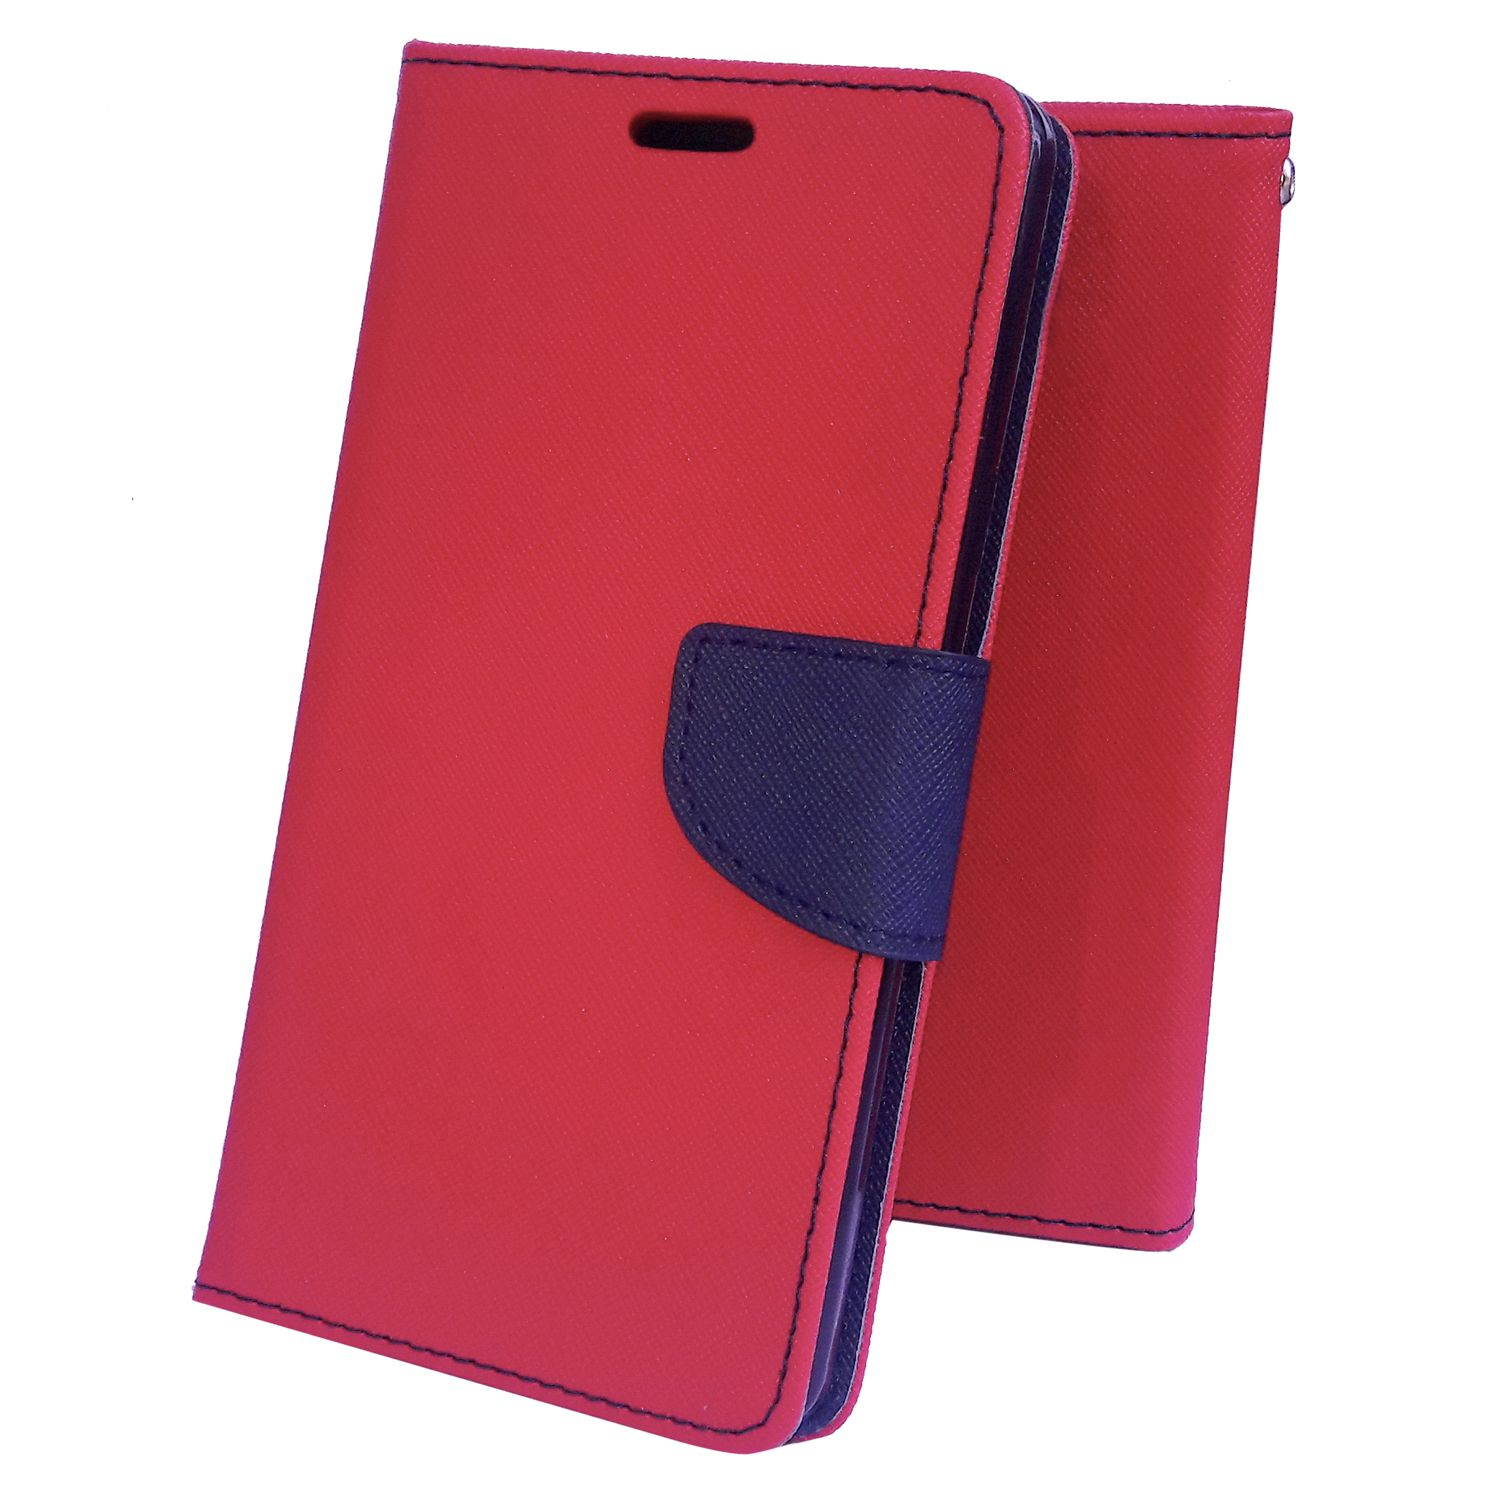 Nokia Lumia 640 XL Flip Cover by Moblo - Red